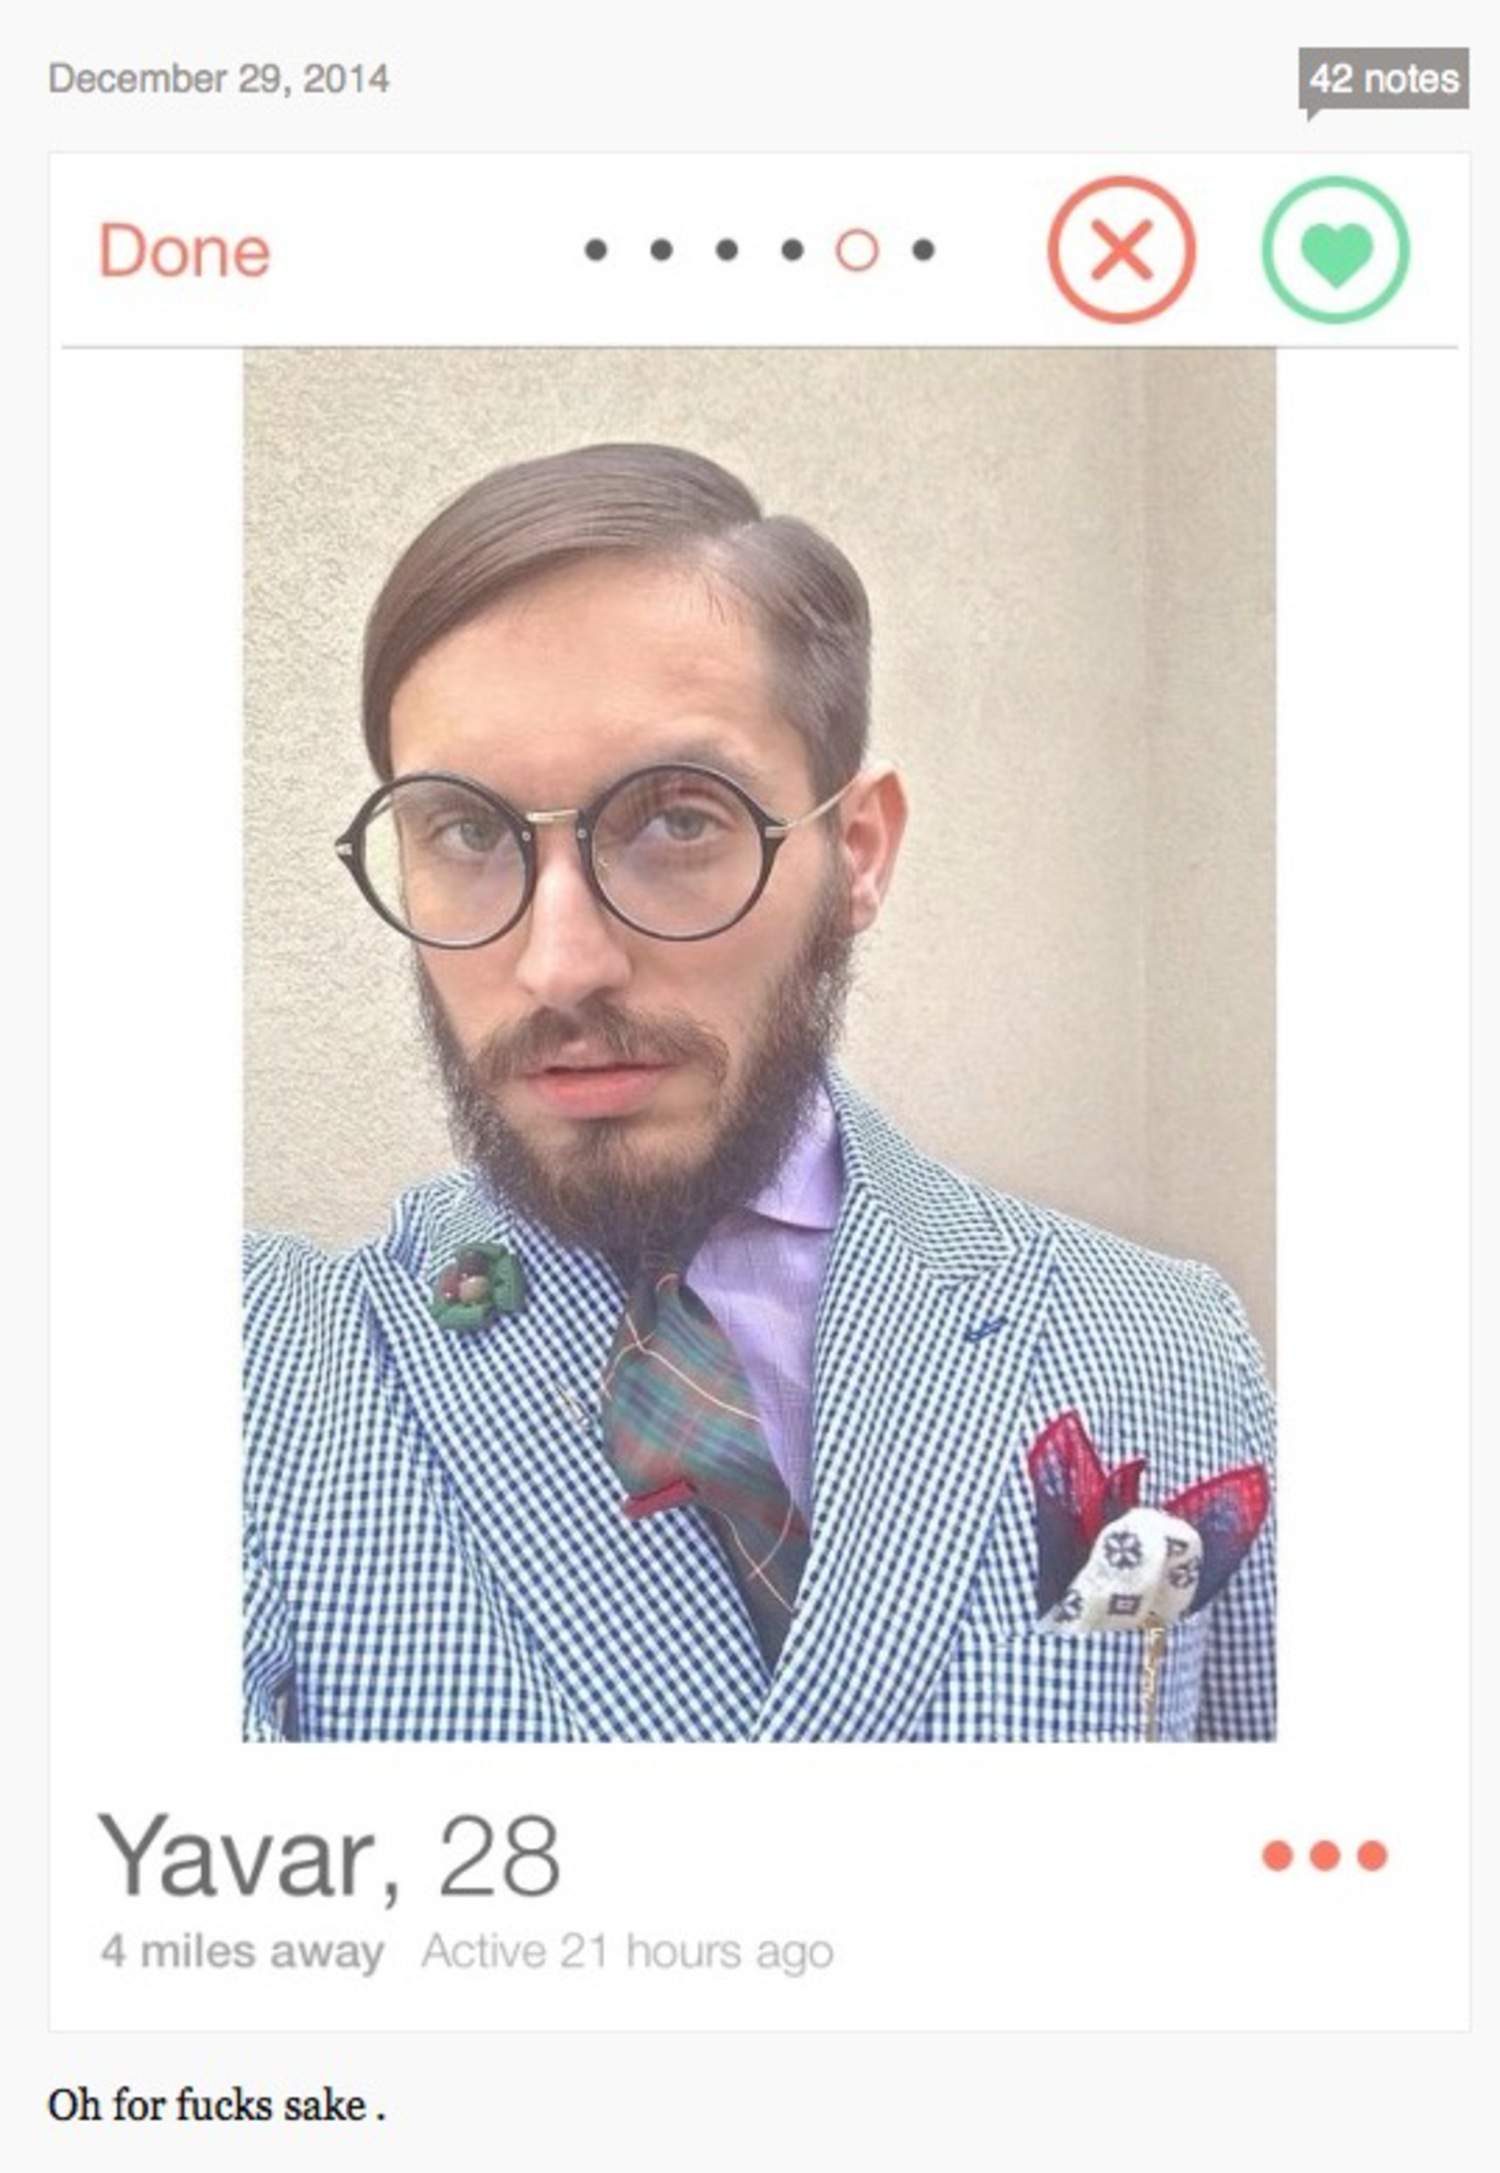 Tinder in Brooklyn, a Blog That Posts Hillariously Bad (And